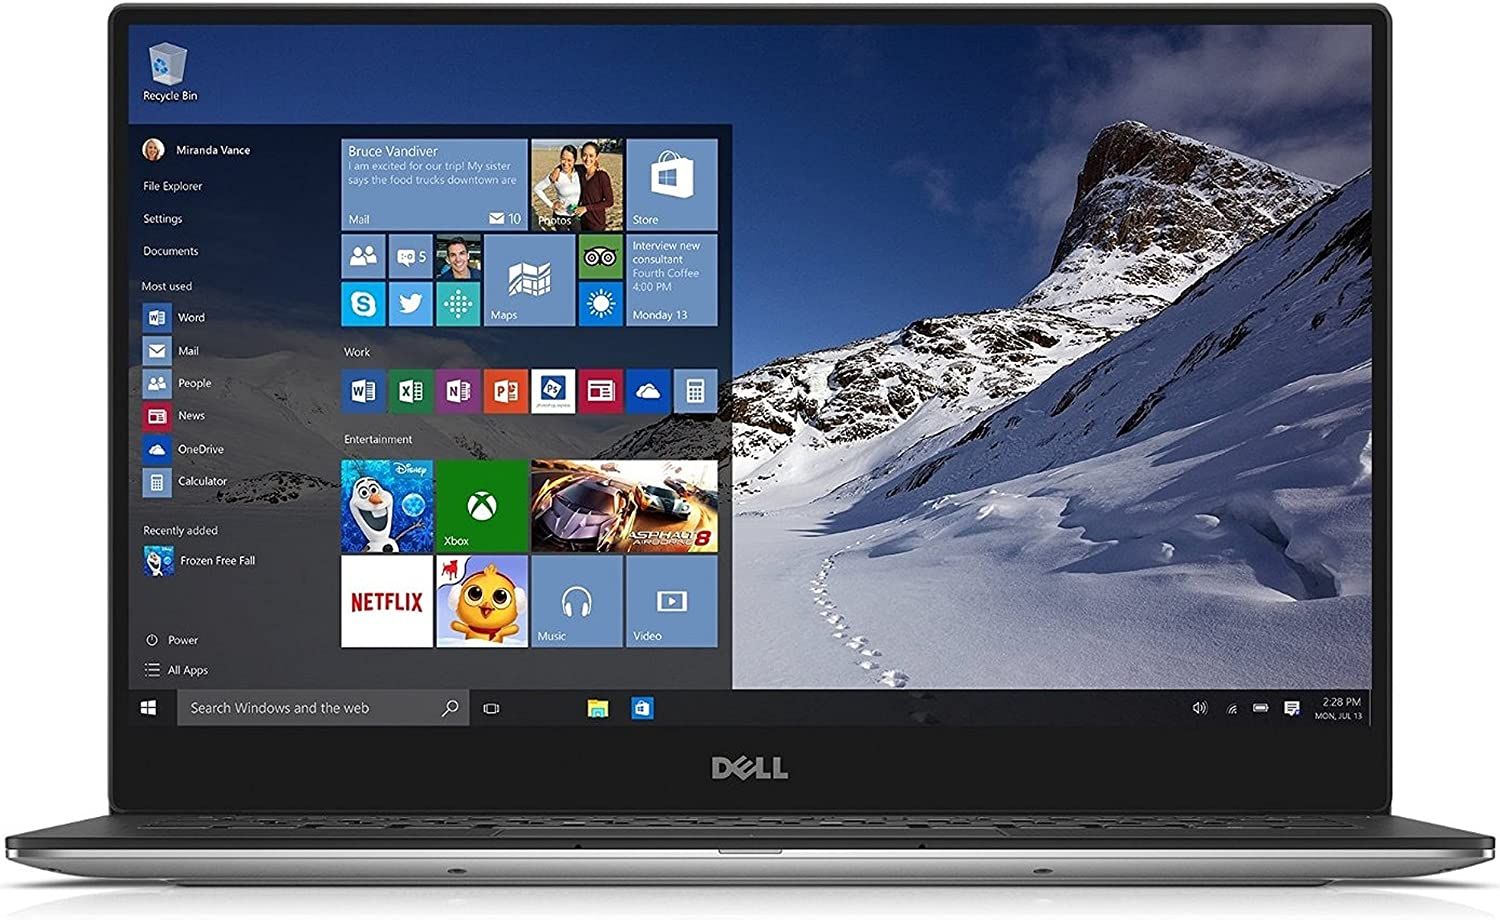 2015 Dell XPS 13 9343 Touchscreen Ultrabook 13.3 QHD+ (3200 x 1800) Touchscreen, 5th Gen Intel Core i7-5500U Processor up to 3.0GHz / 8GB DDR3 / 256GB SSD / Windows 10